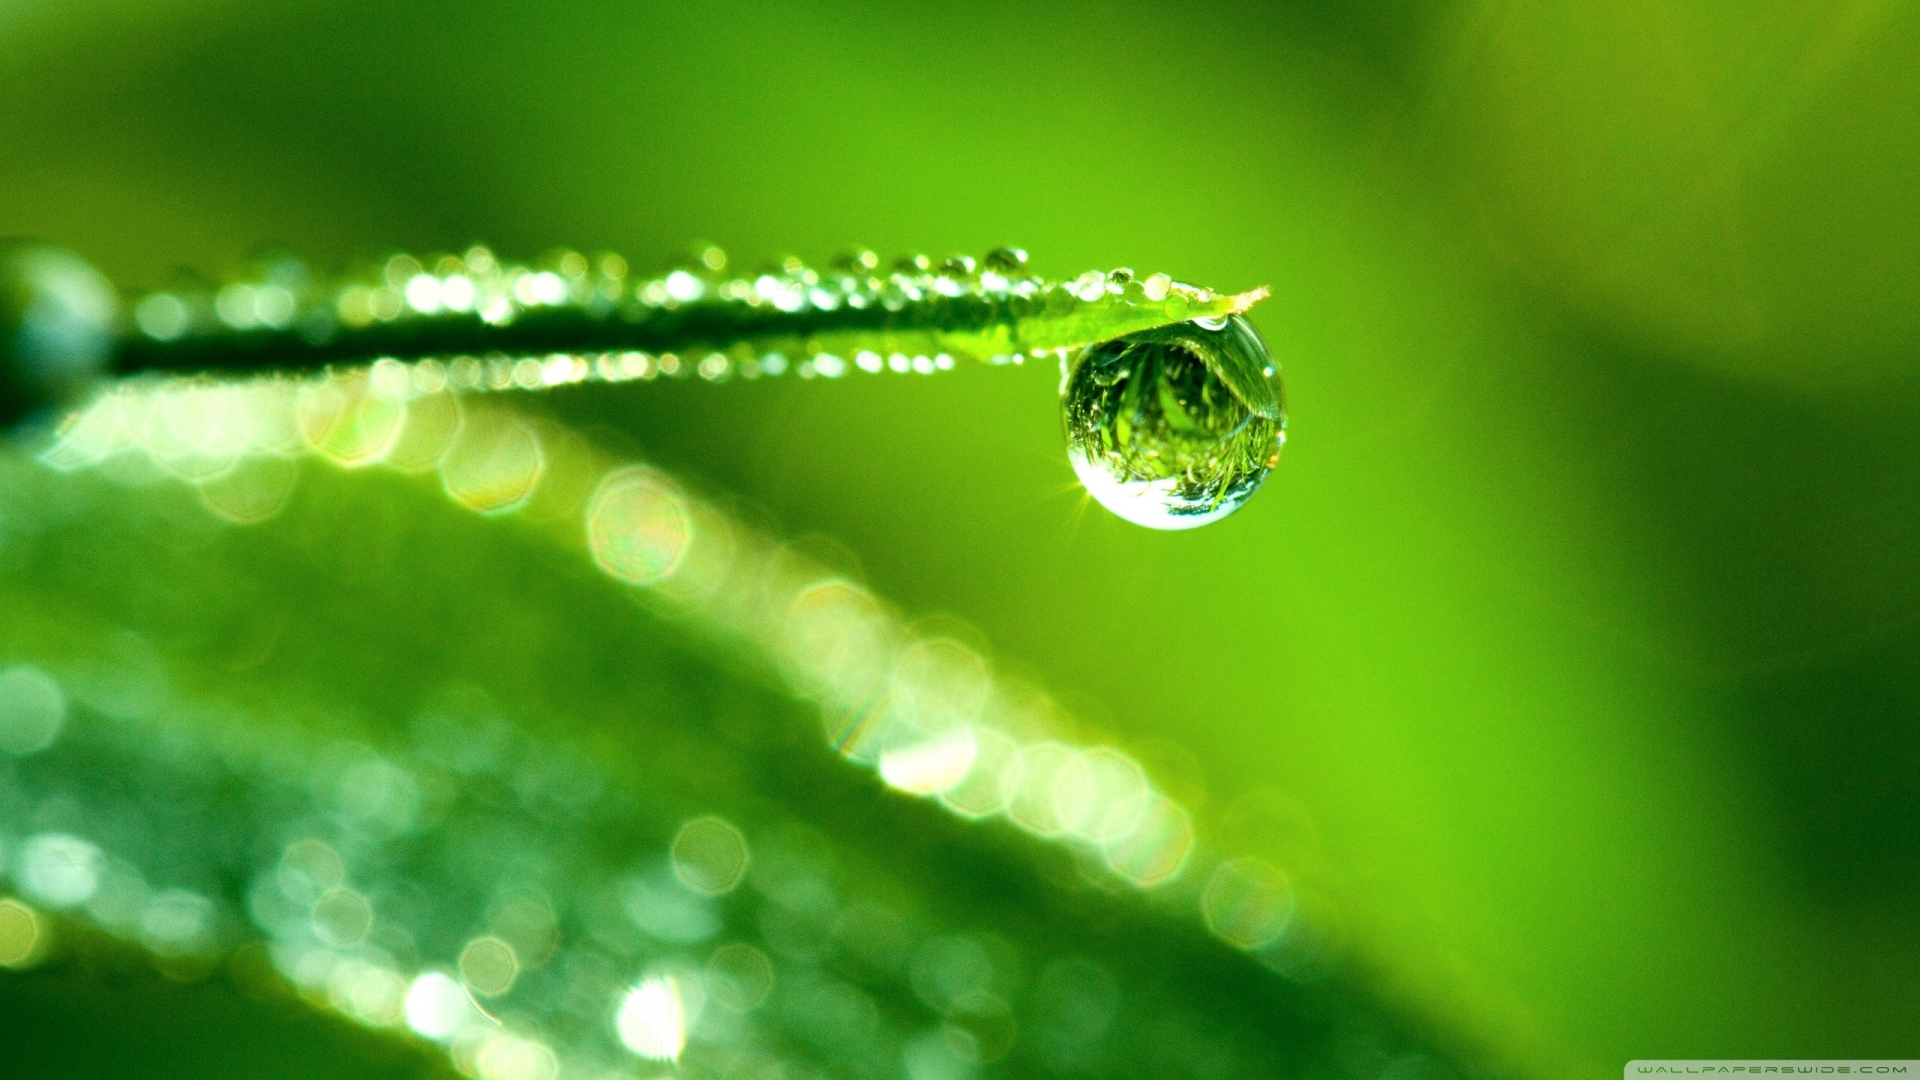 27986 download wallpaper Grass, Background, Drops screensavers and pictures for free